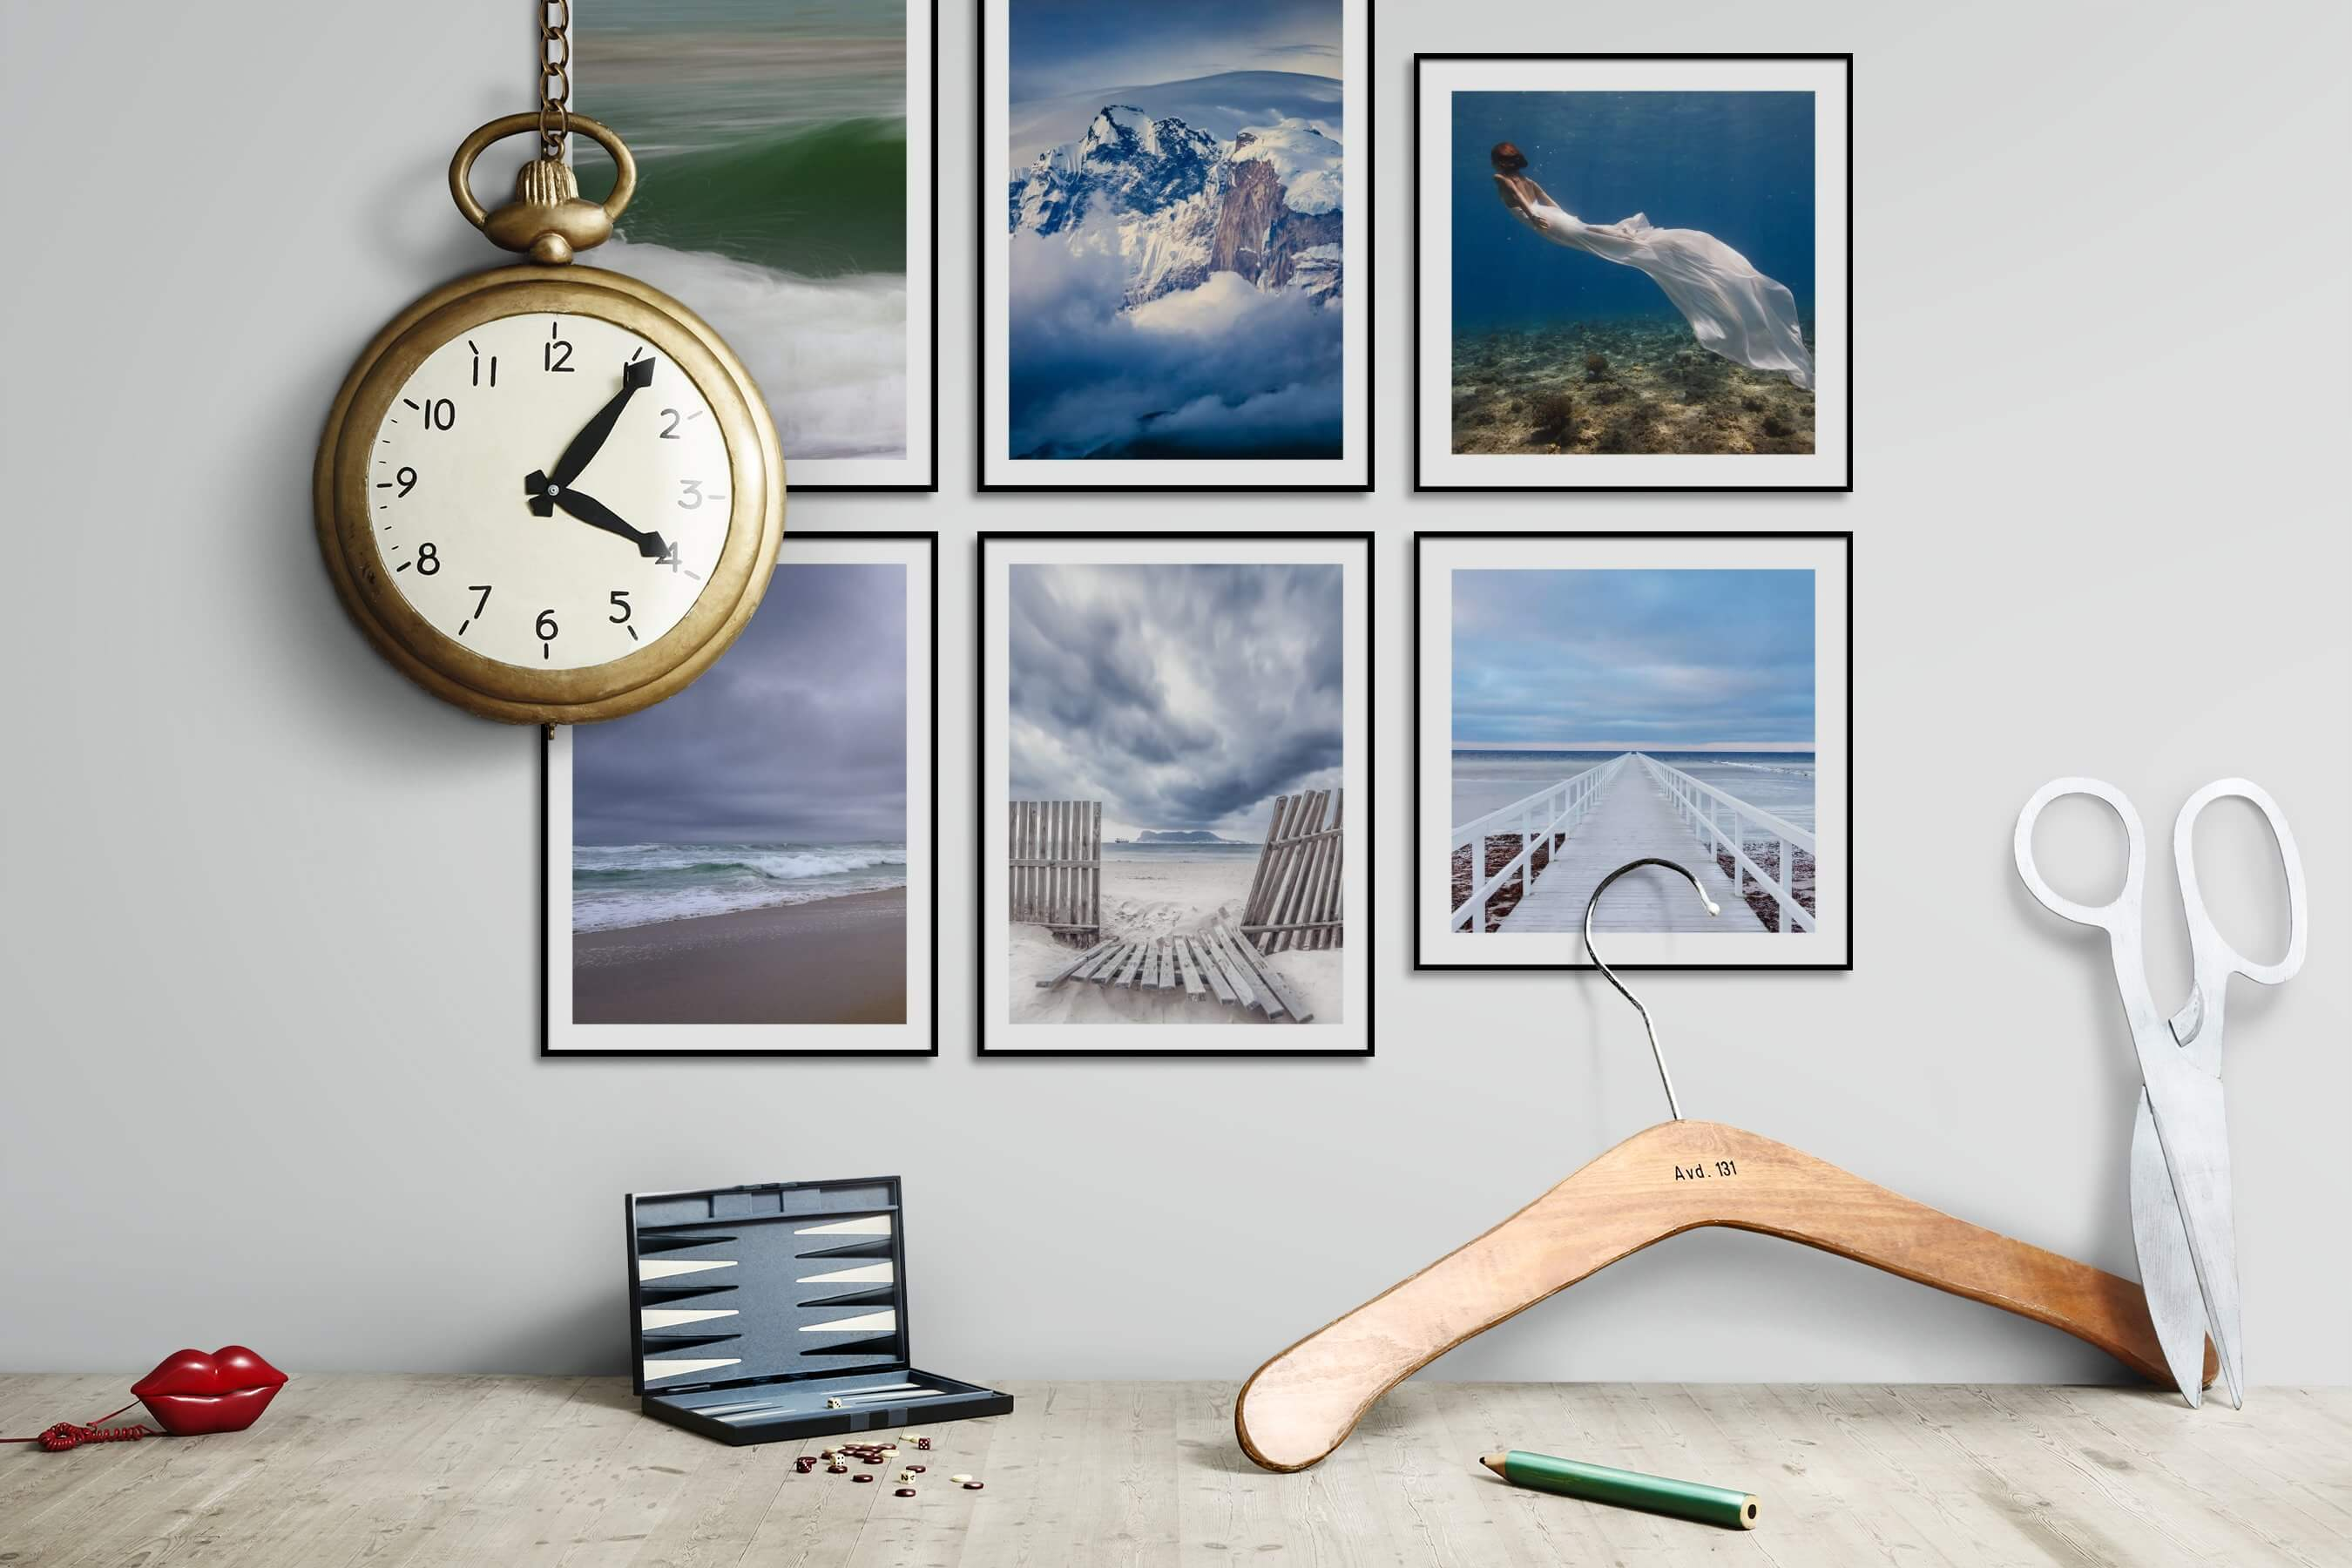 Gallery wall idea with six framed pictures arranged on a wall depicting Beach & Water, Nature, Fashion & Beauty, and Mindfulness